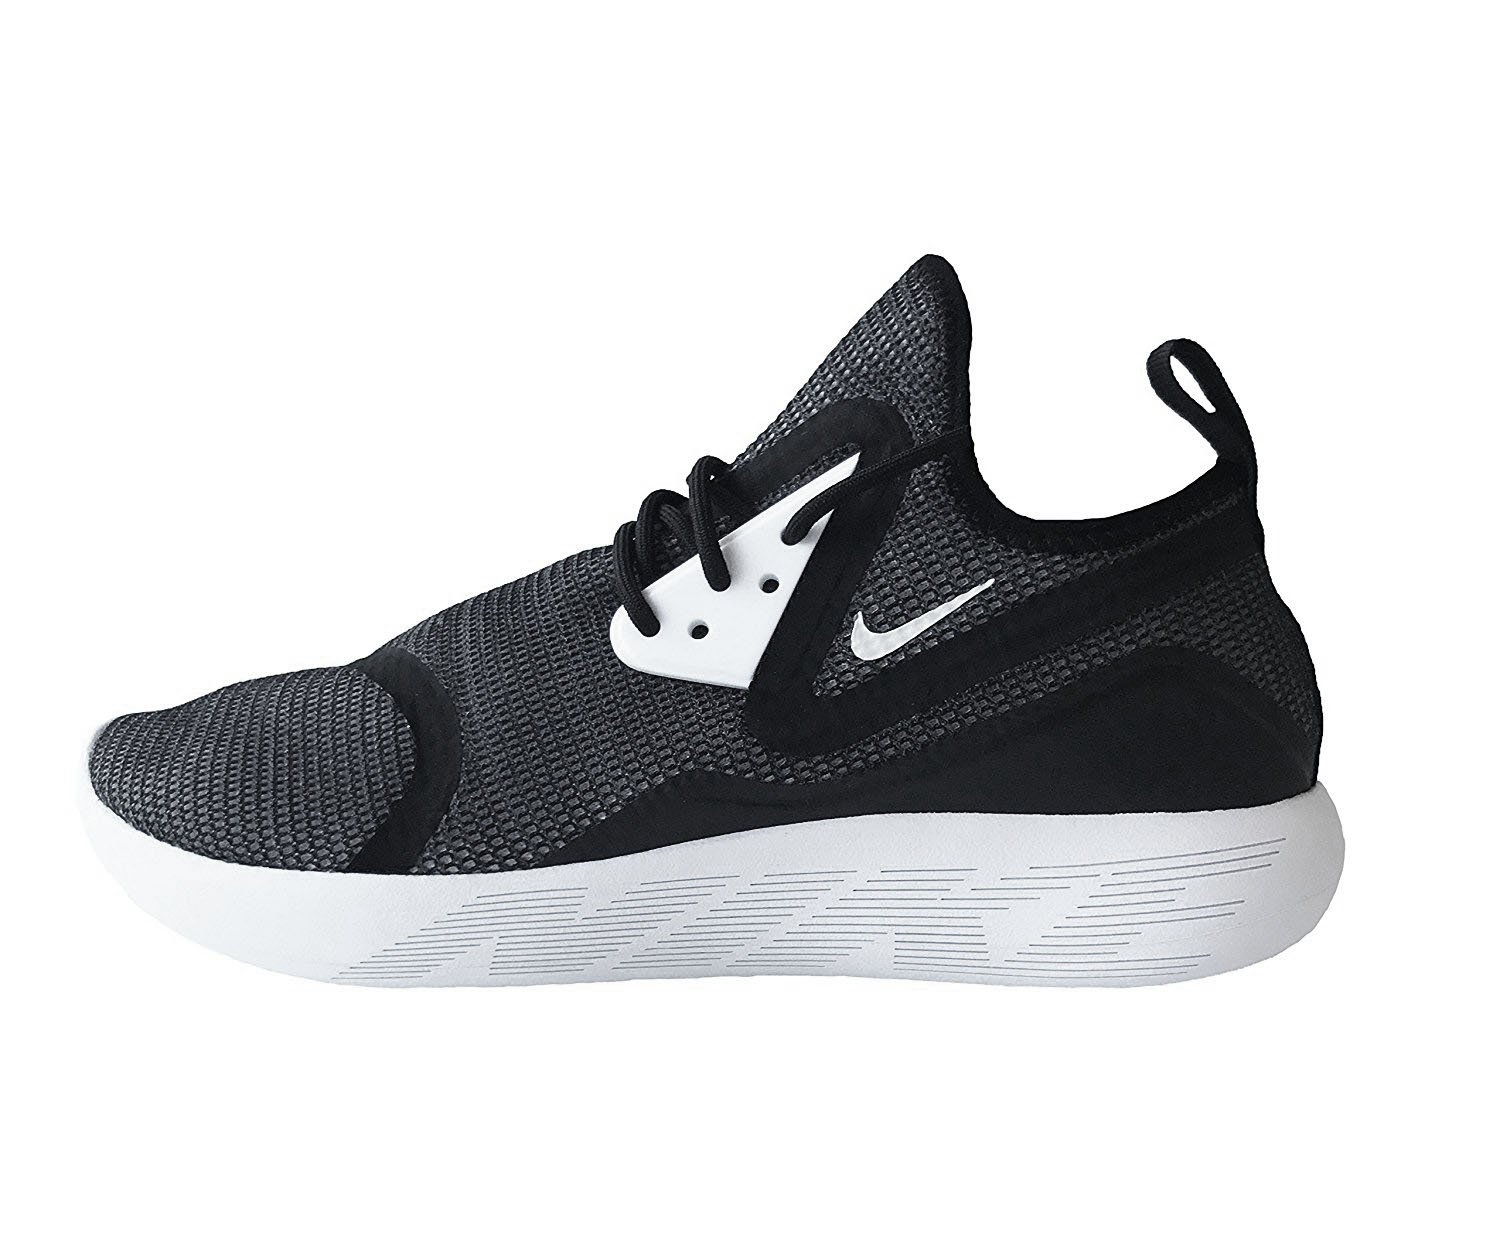 Nike Mens Lunarcharge Essential Ankle-High Fabric Running Shoe  41|Black White Black 001